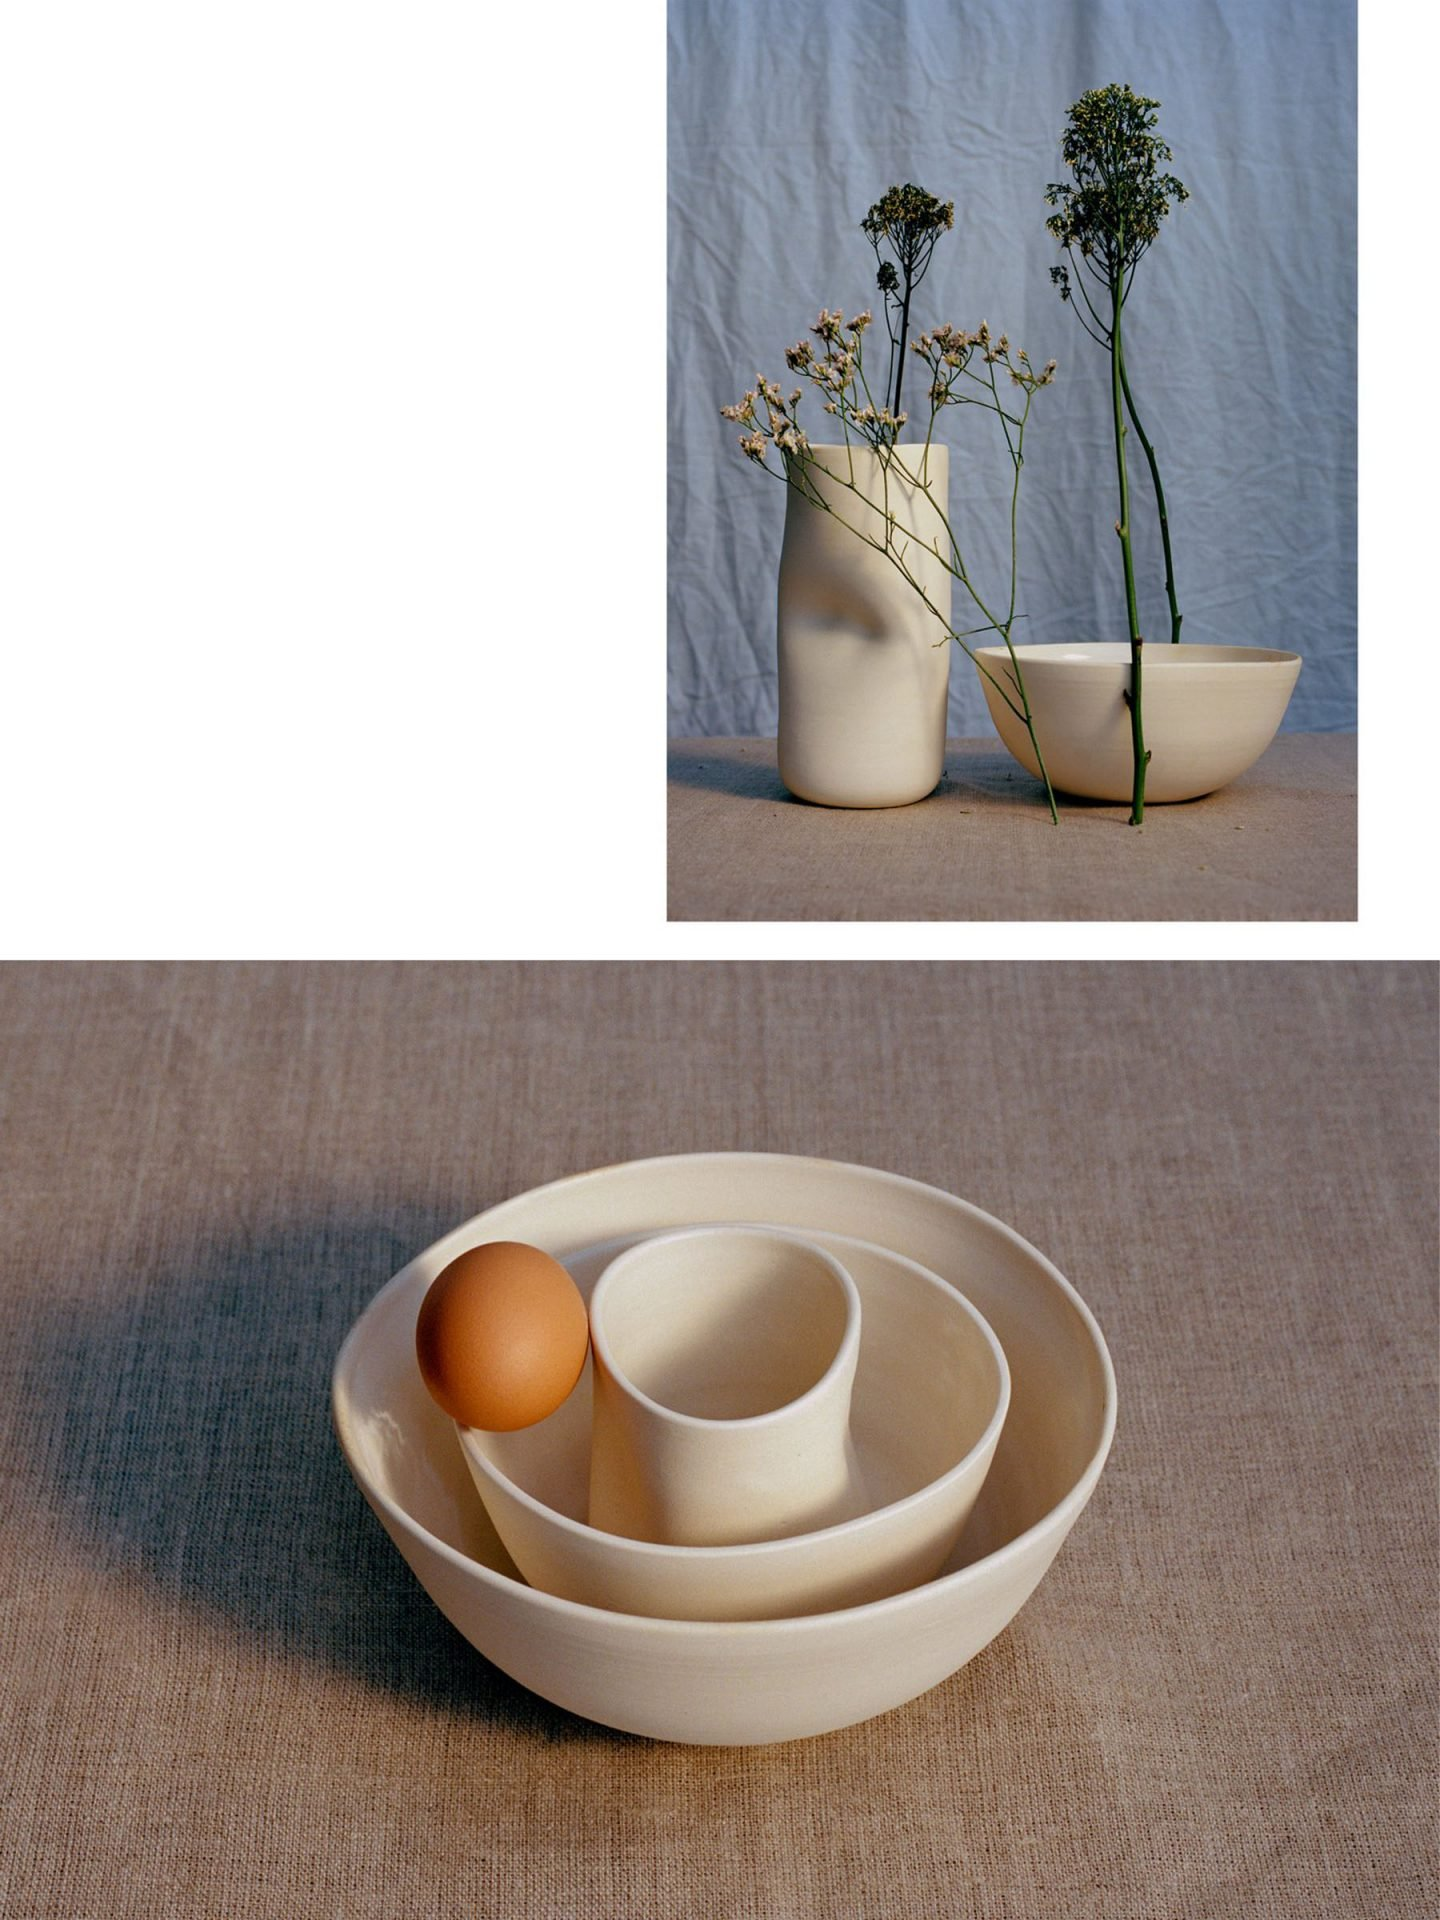 iGNANT-Design-PIAULE-Homewares-034